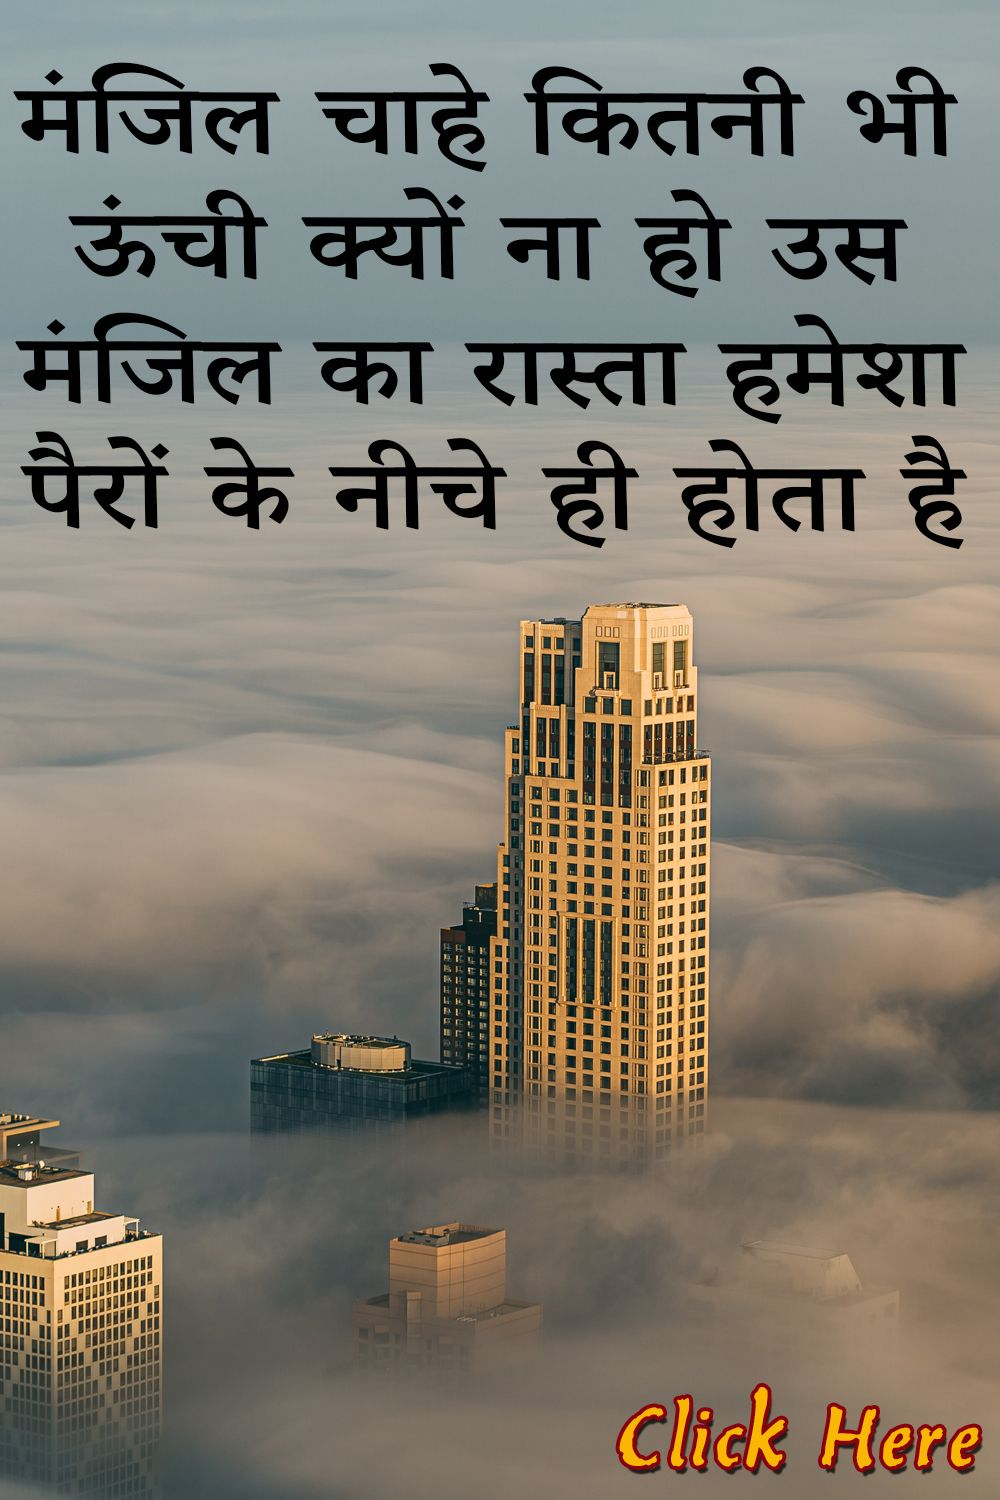 रणादायक सुविचार in 2020 | Good thoughts quotes, Pictures ...